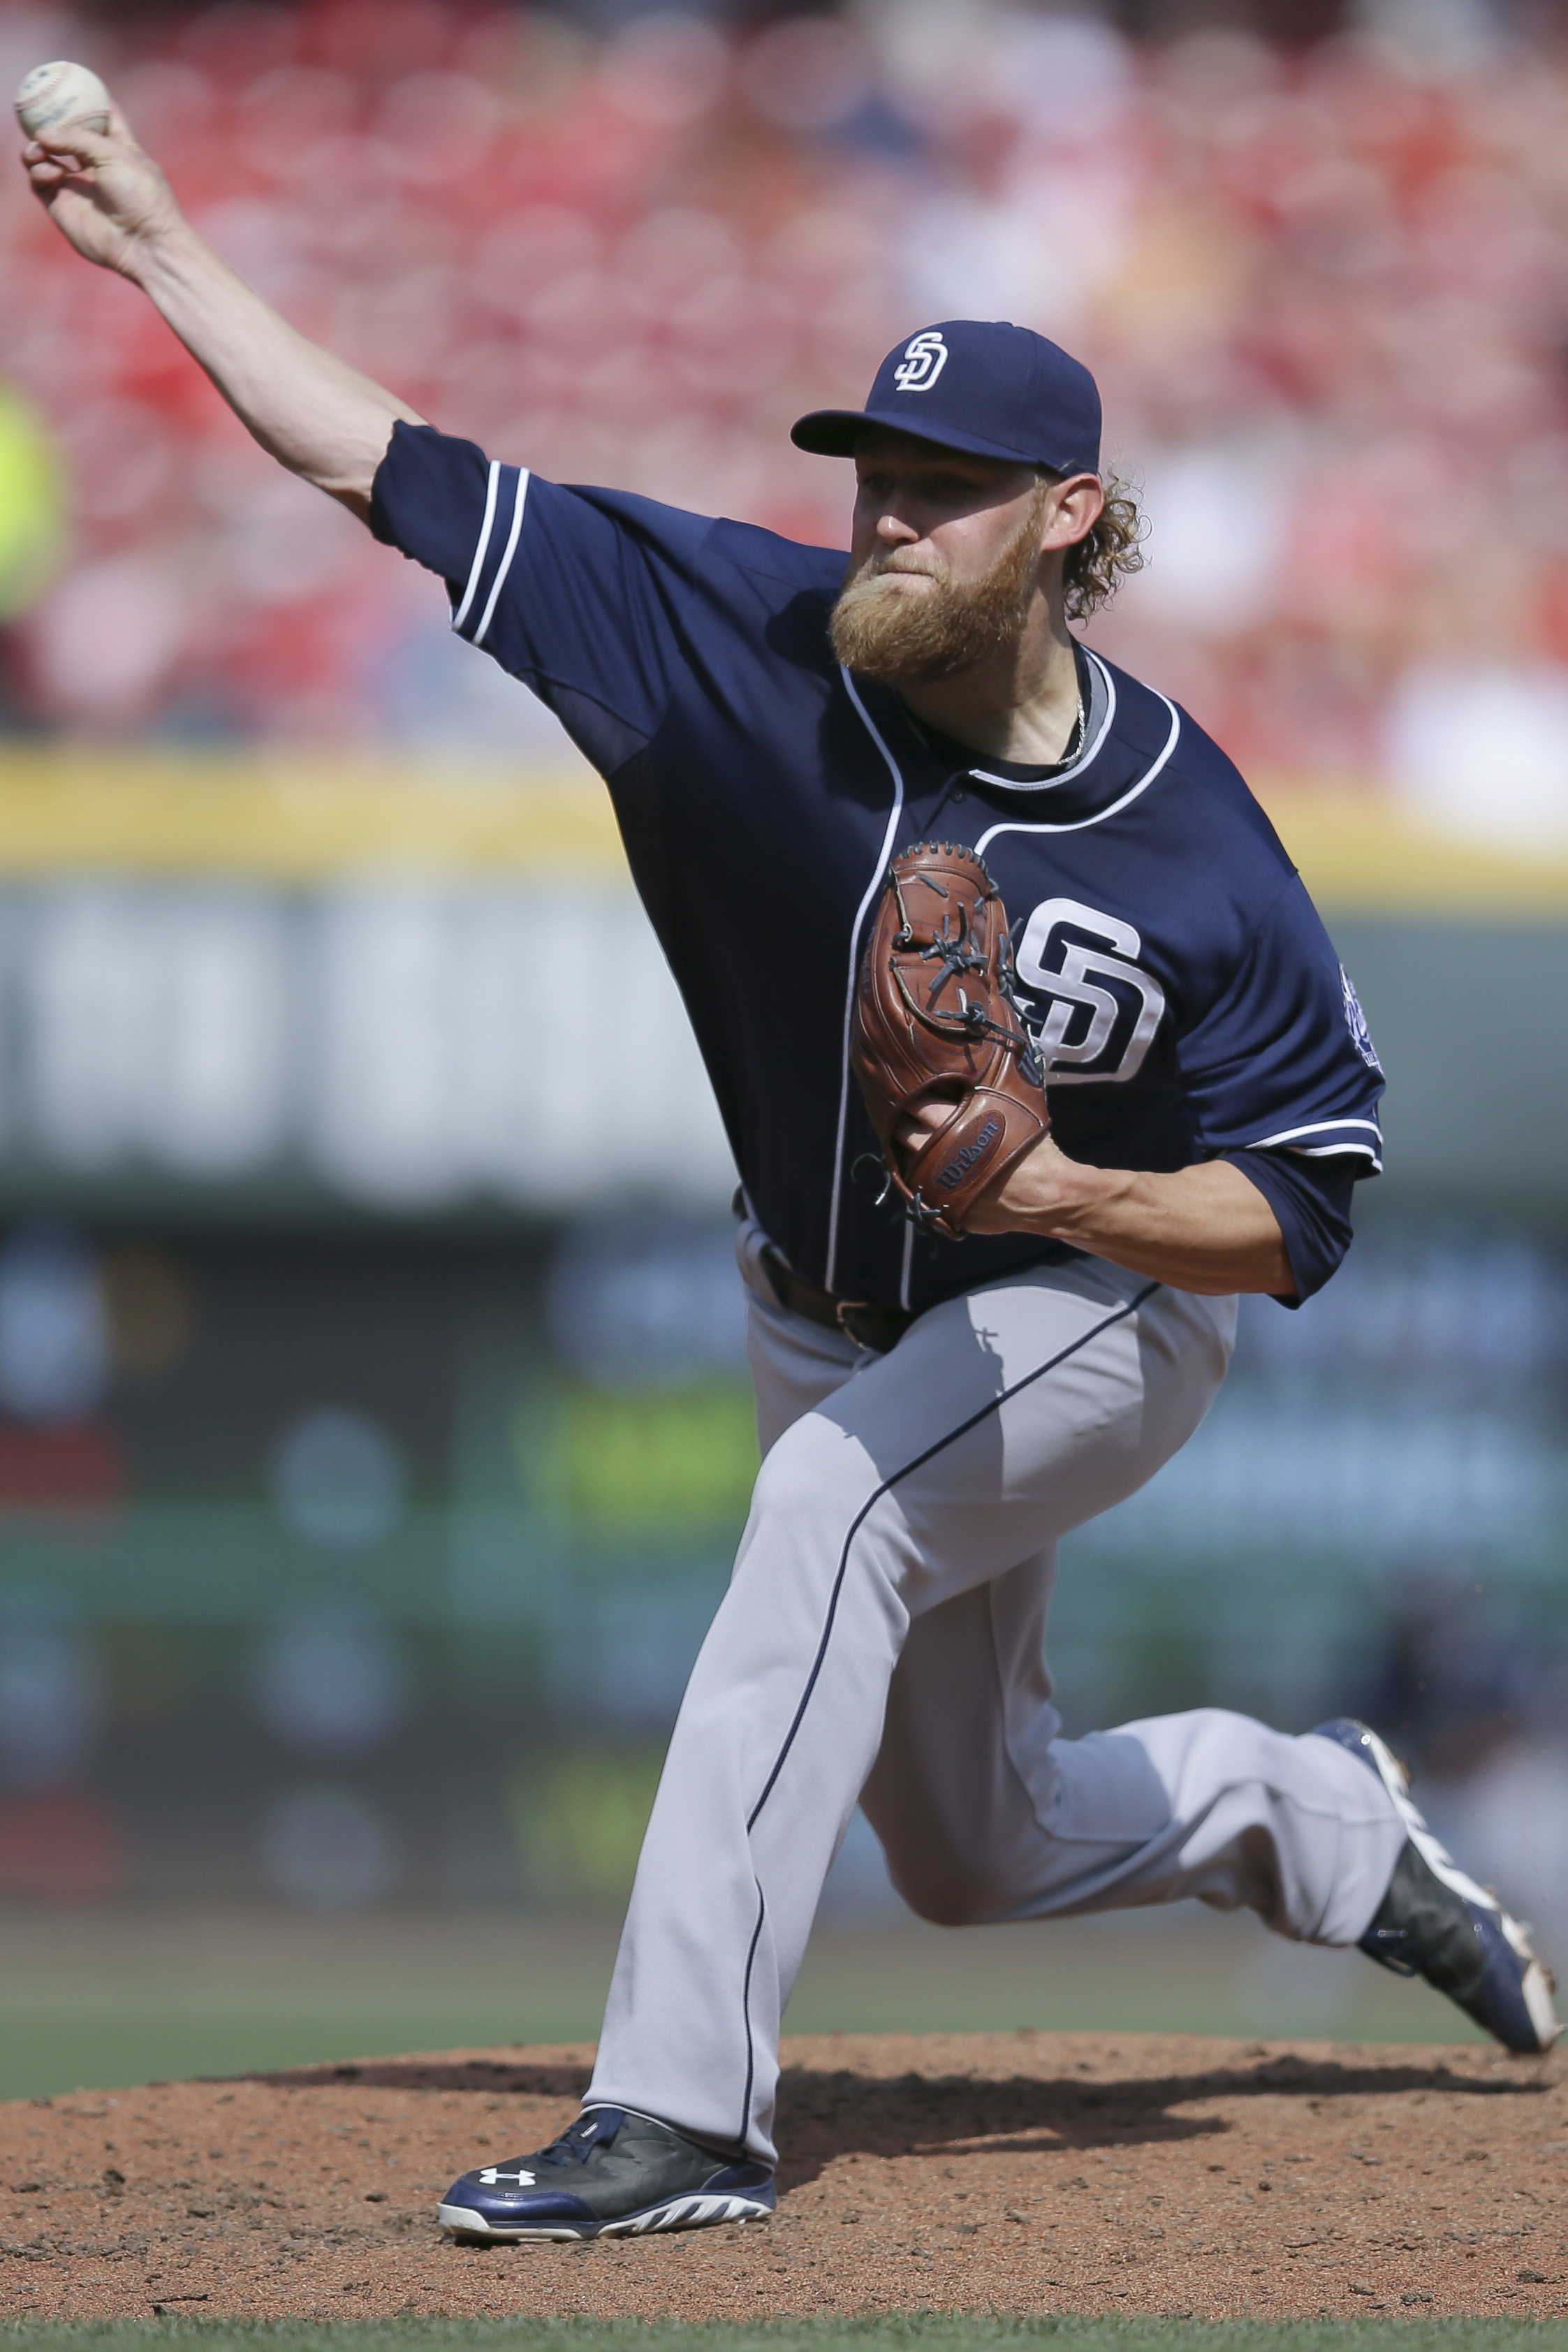 Hot Stove Digest: The Orioles could look at Andrew Cashner